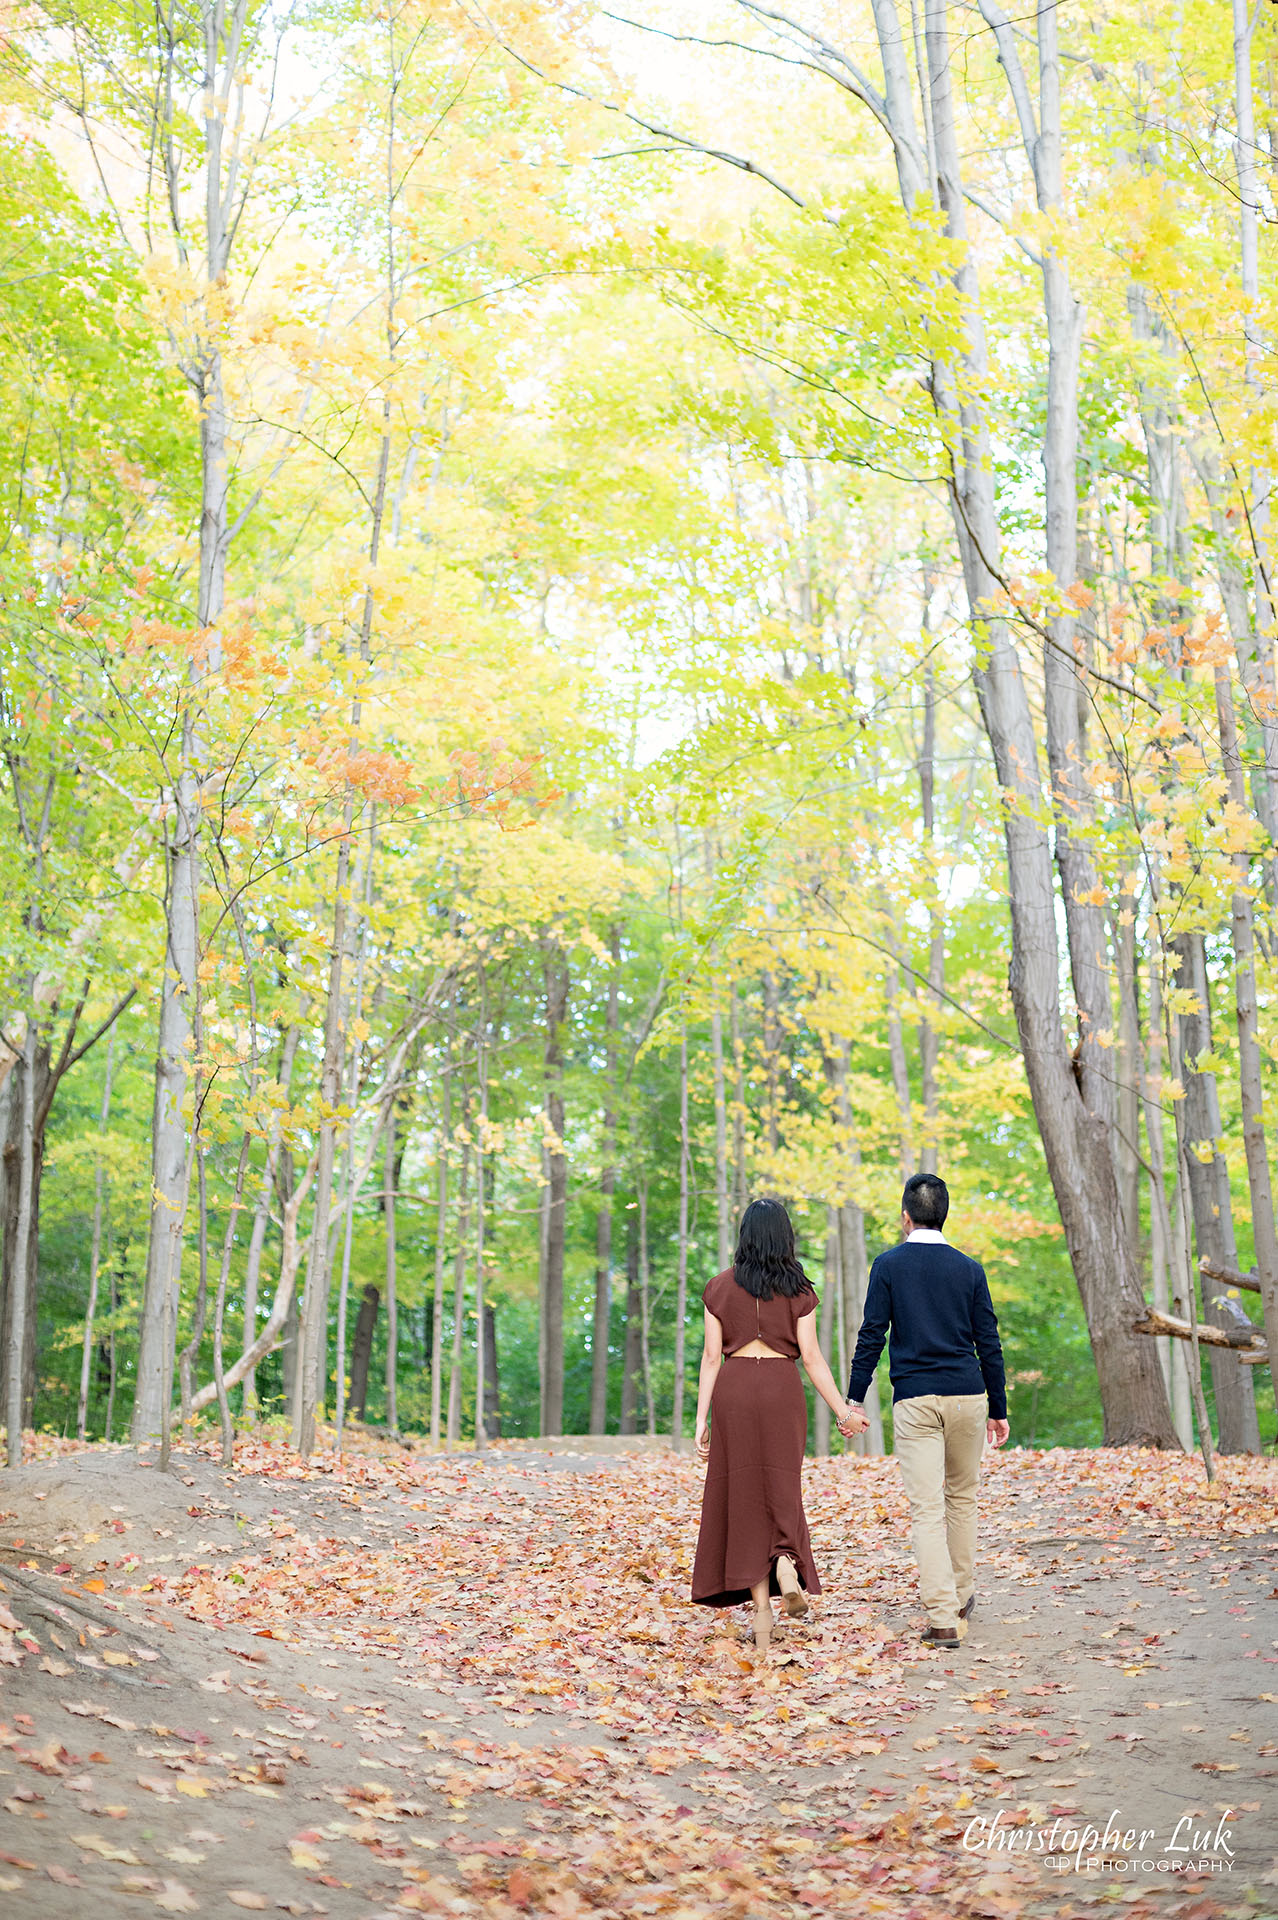 Christopher Luk Toronto Wedding Engagement Session Photographer Autumn Fall Leaves Natural Candid Photojournalistic Bride Groom Hiking Trail Trees Holding Hands Together Walking